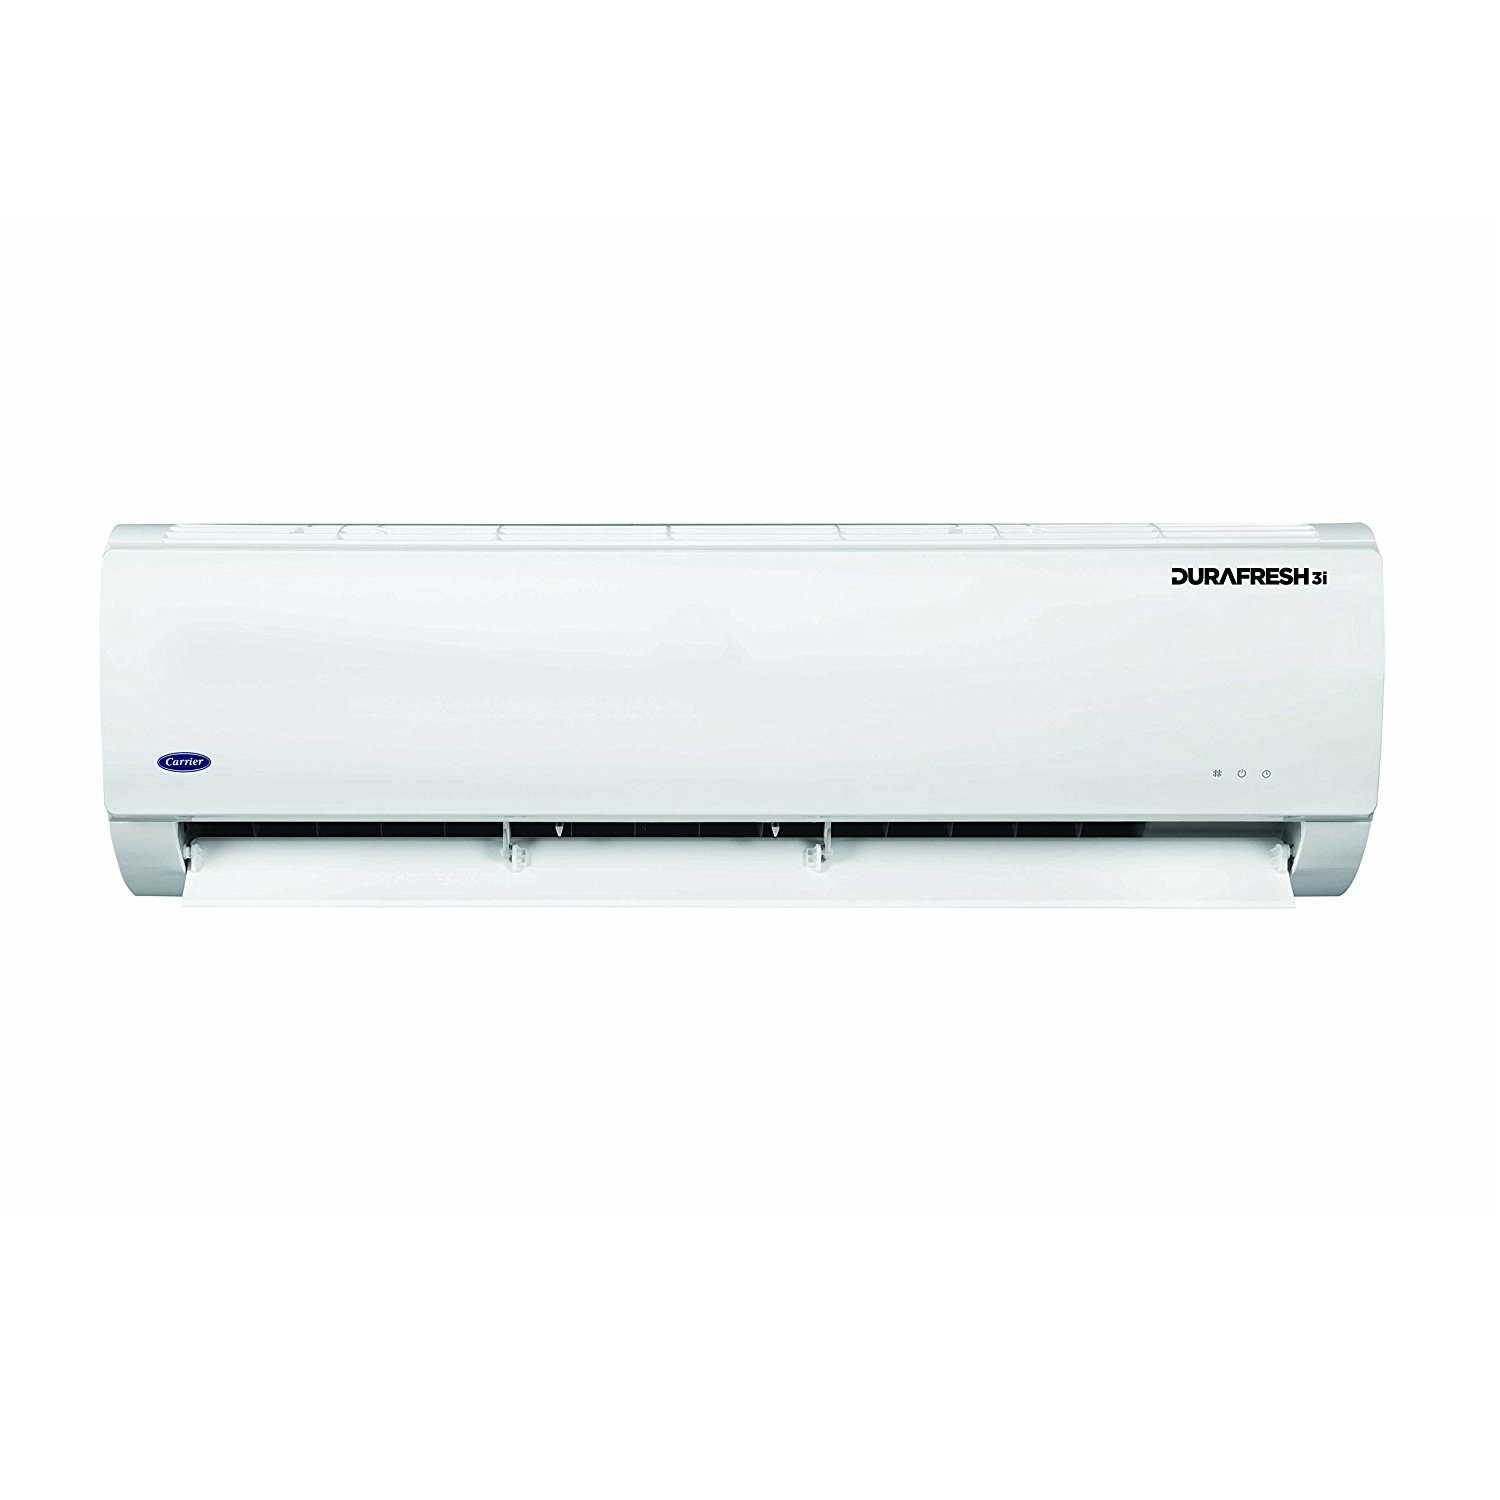 Carrier 12K Durafresh 1 Ton 3 Star Inverter Split AC